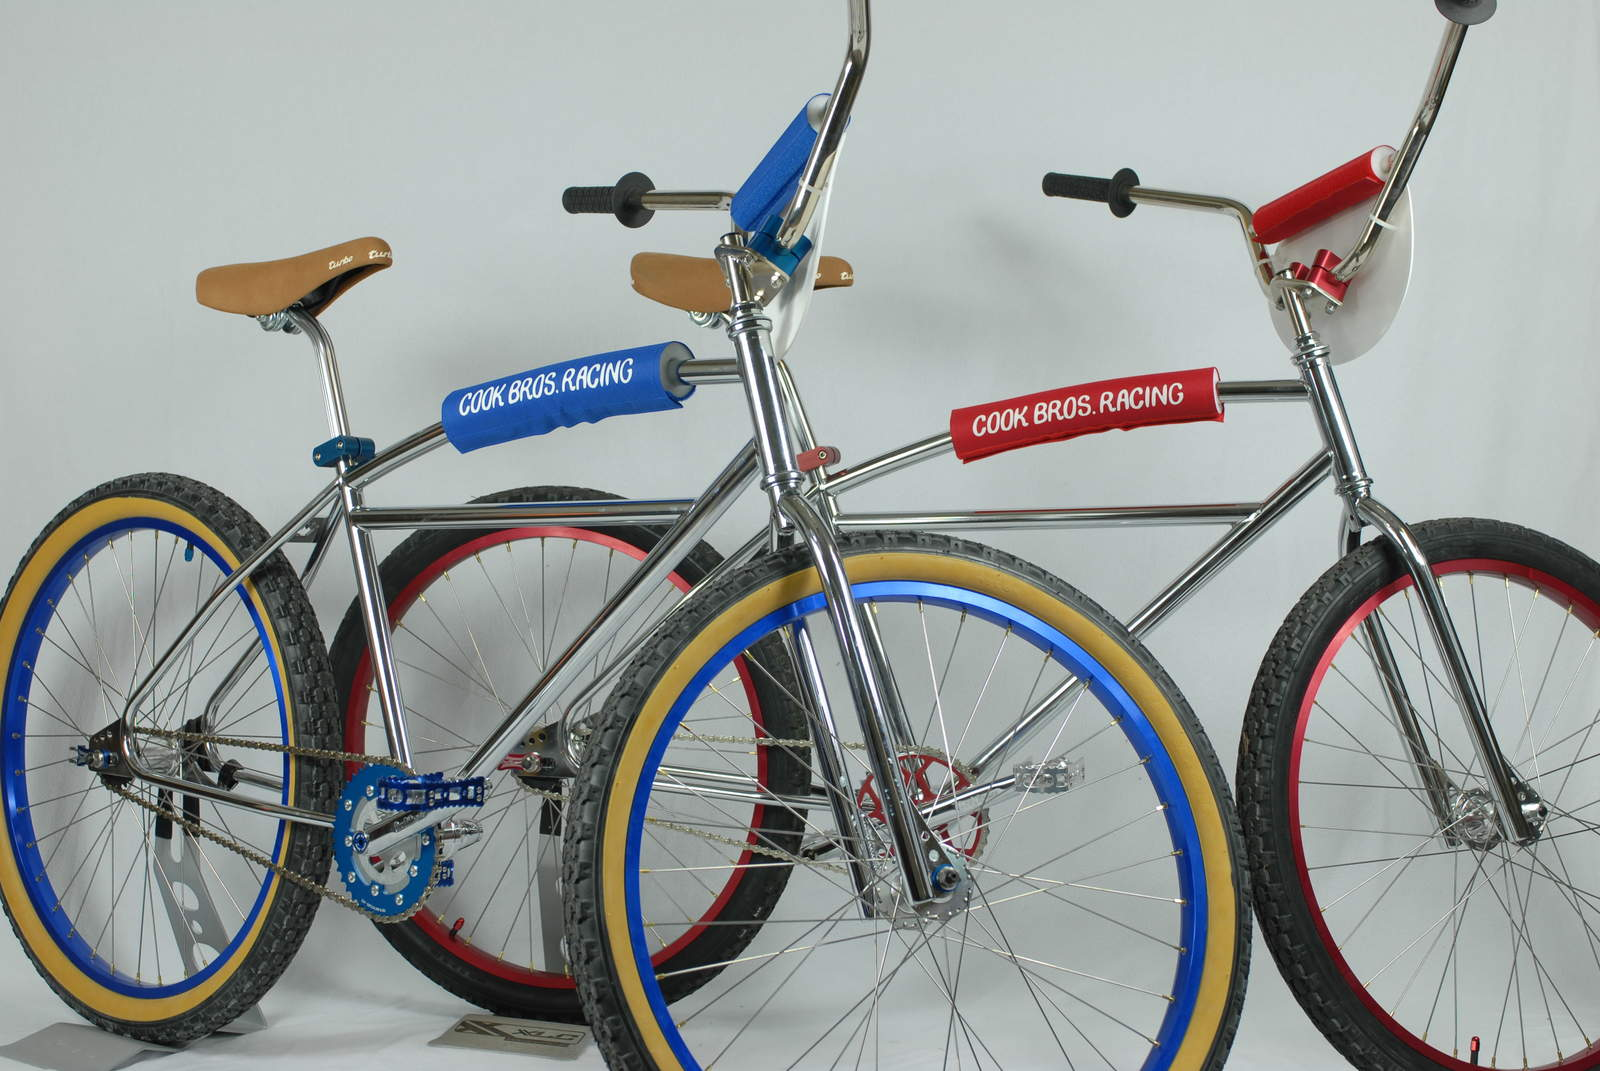 https://s3.amazonaws.com/uploads.bmxmuseum.com/user-images/88664/dsc_06095c6a413d38.jpg